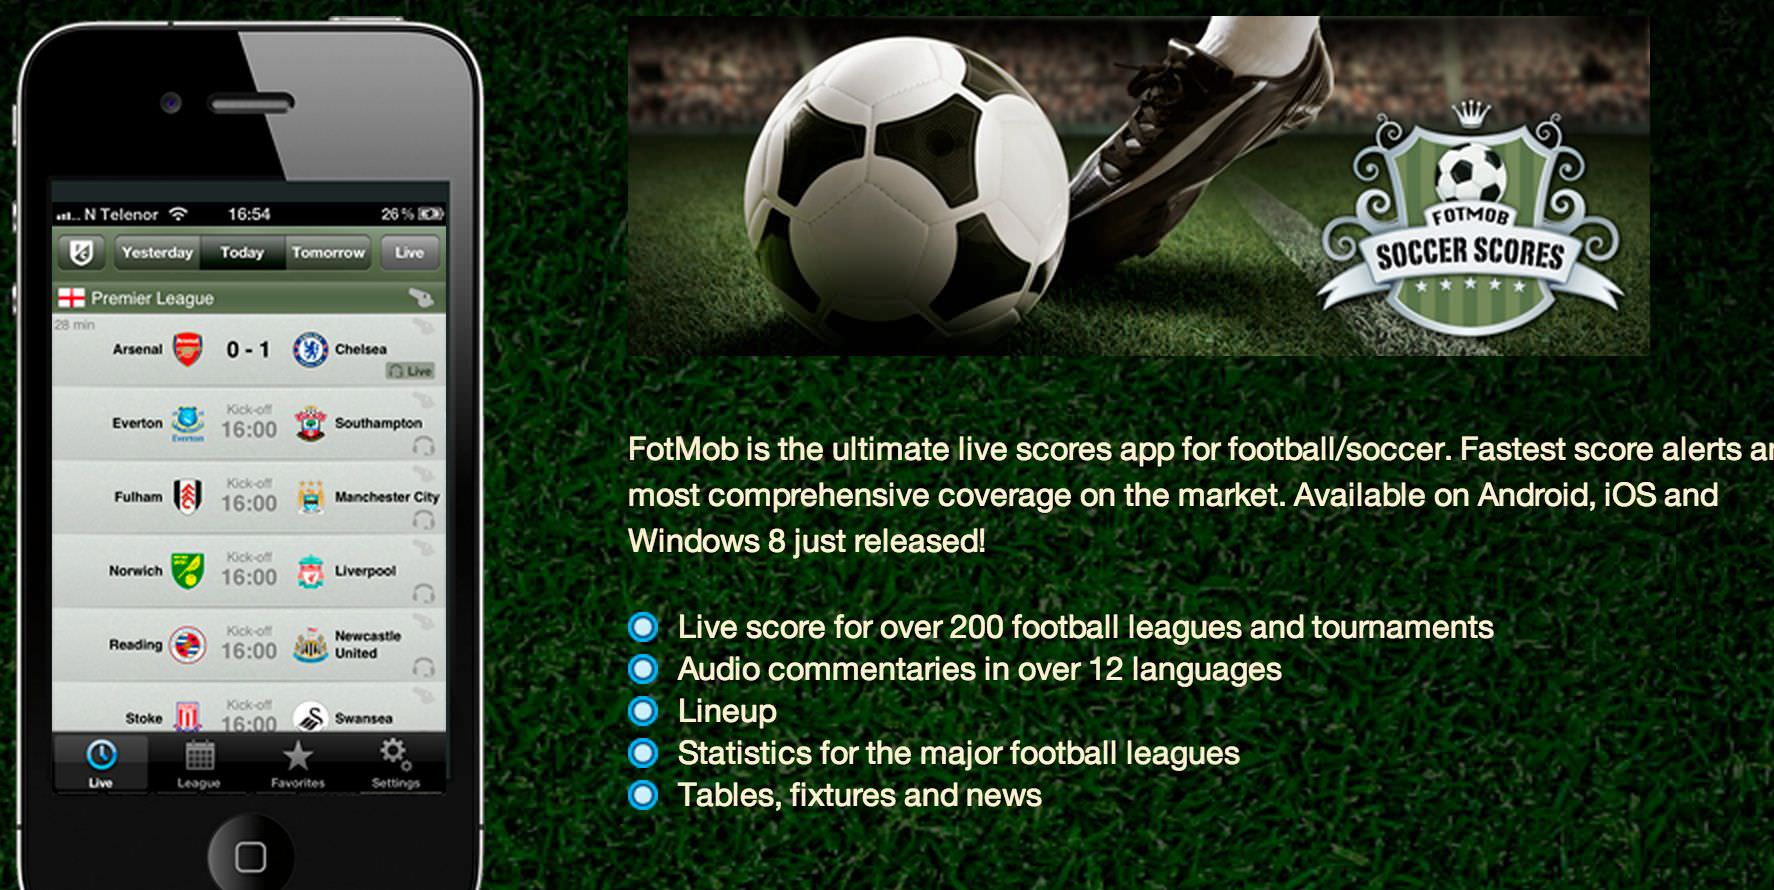 Sofa Score Live Games The Six Most Popular Fifa World Cup 2014 Apps For Android Use Of